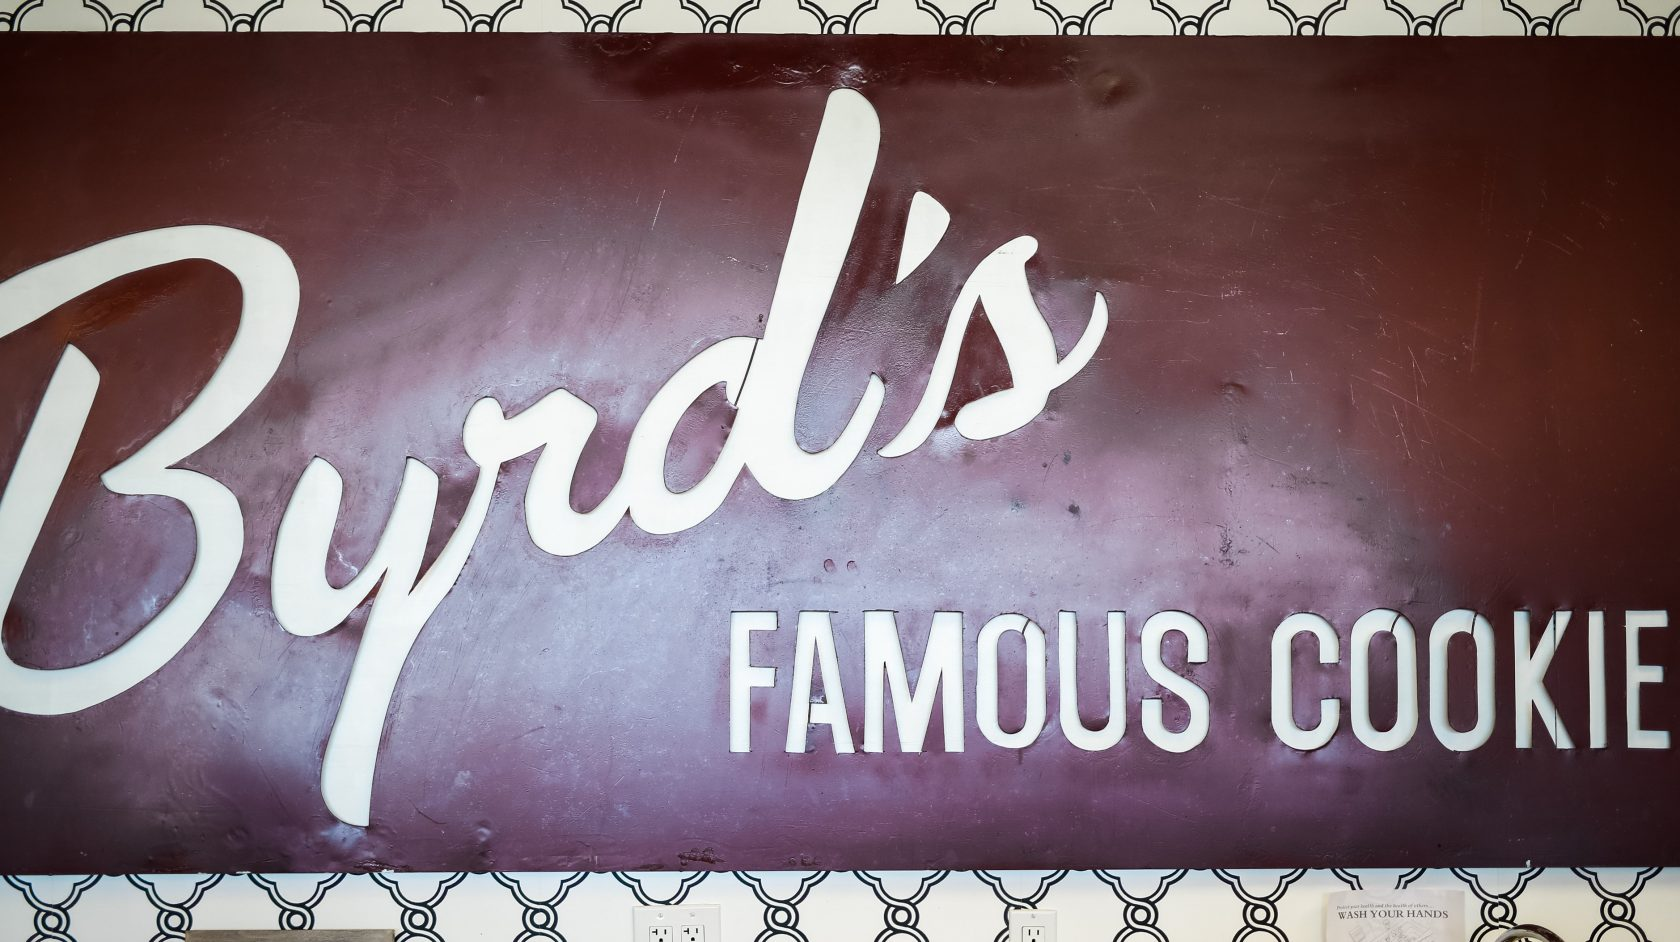 Byrd's famous cookies sign